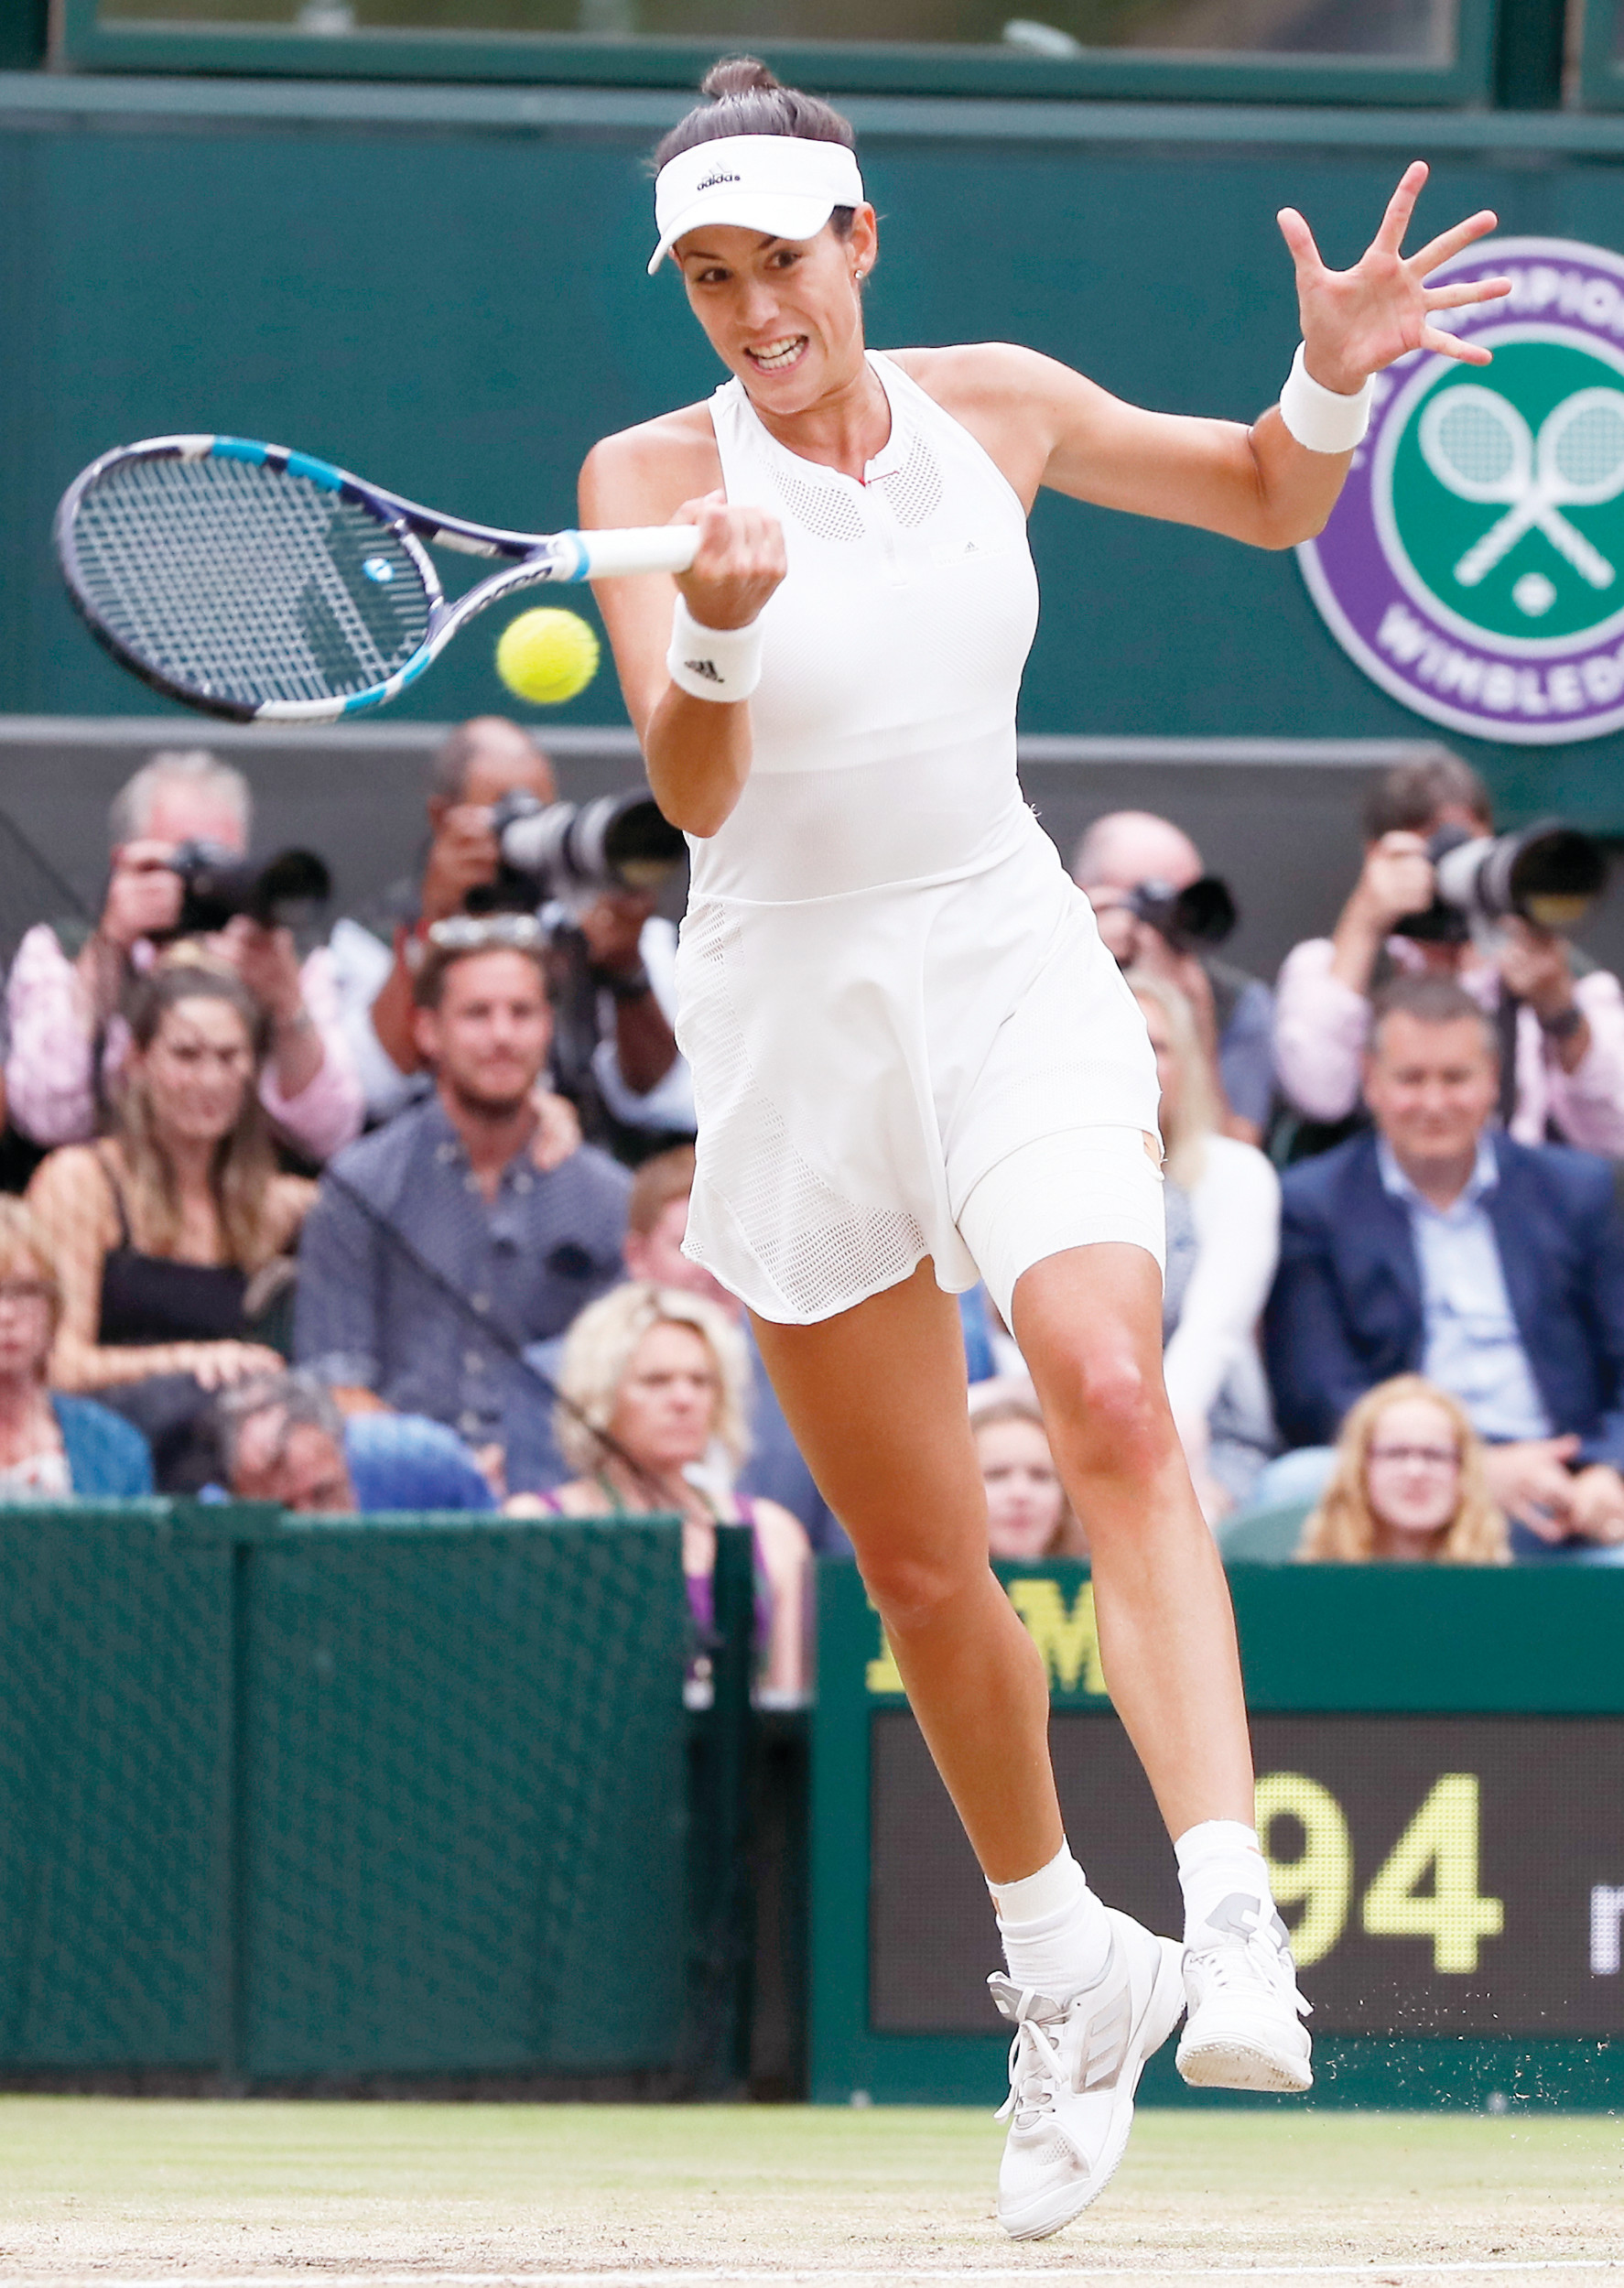 Garbine Muguruza hits a return to Venus Williams during her 7-5, 6-0 victory in the Wimbledon women's singles final on Saturday in London.